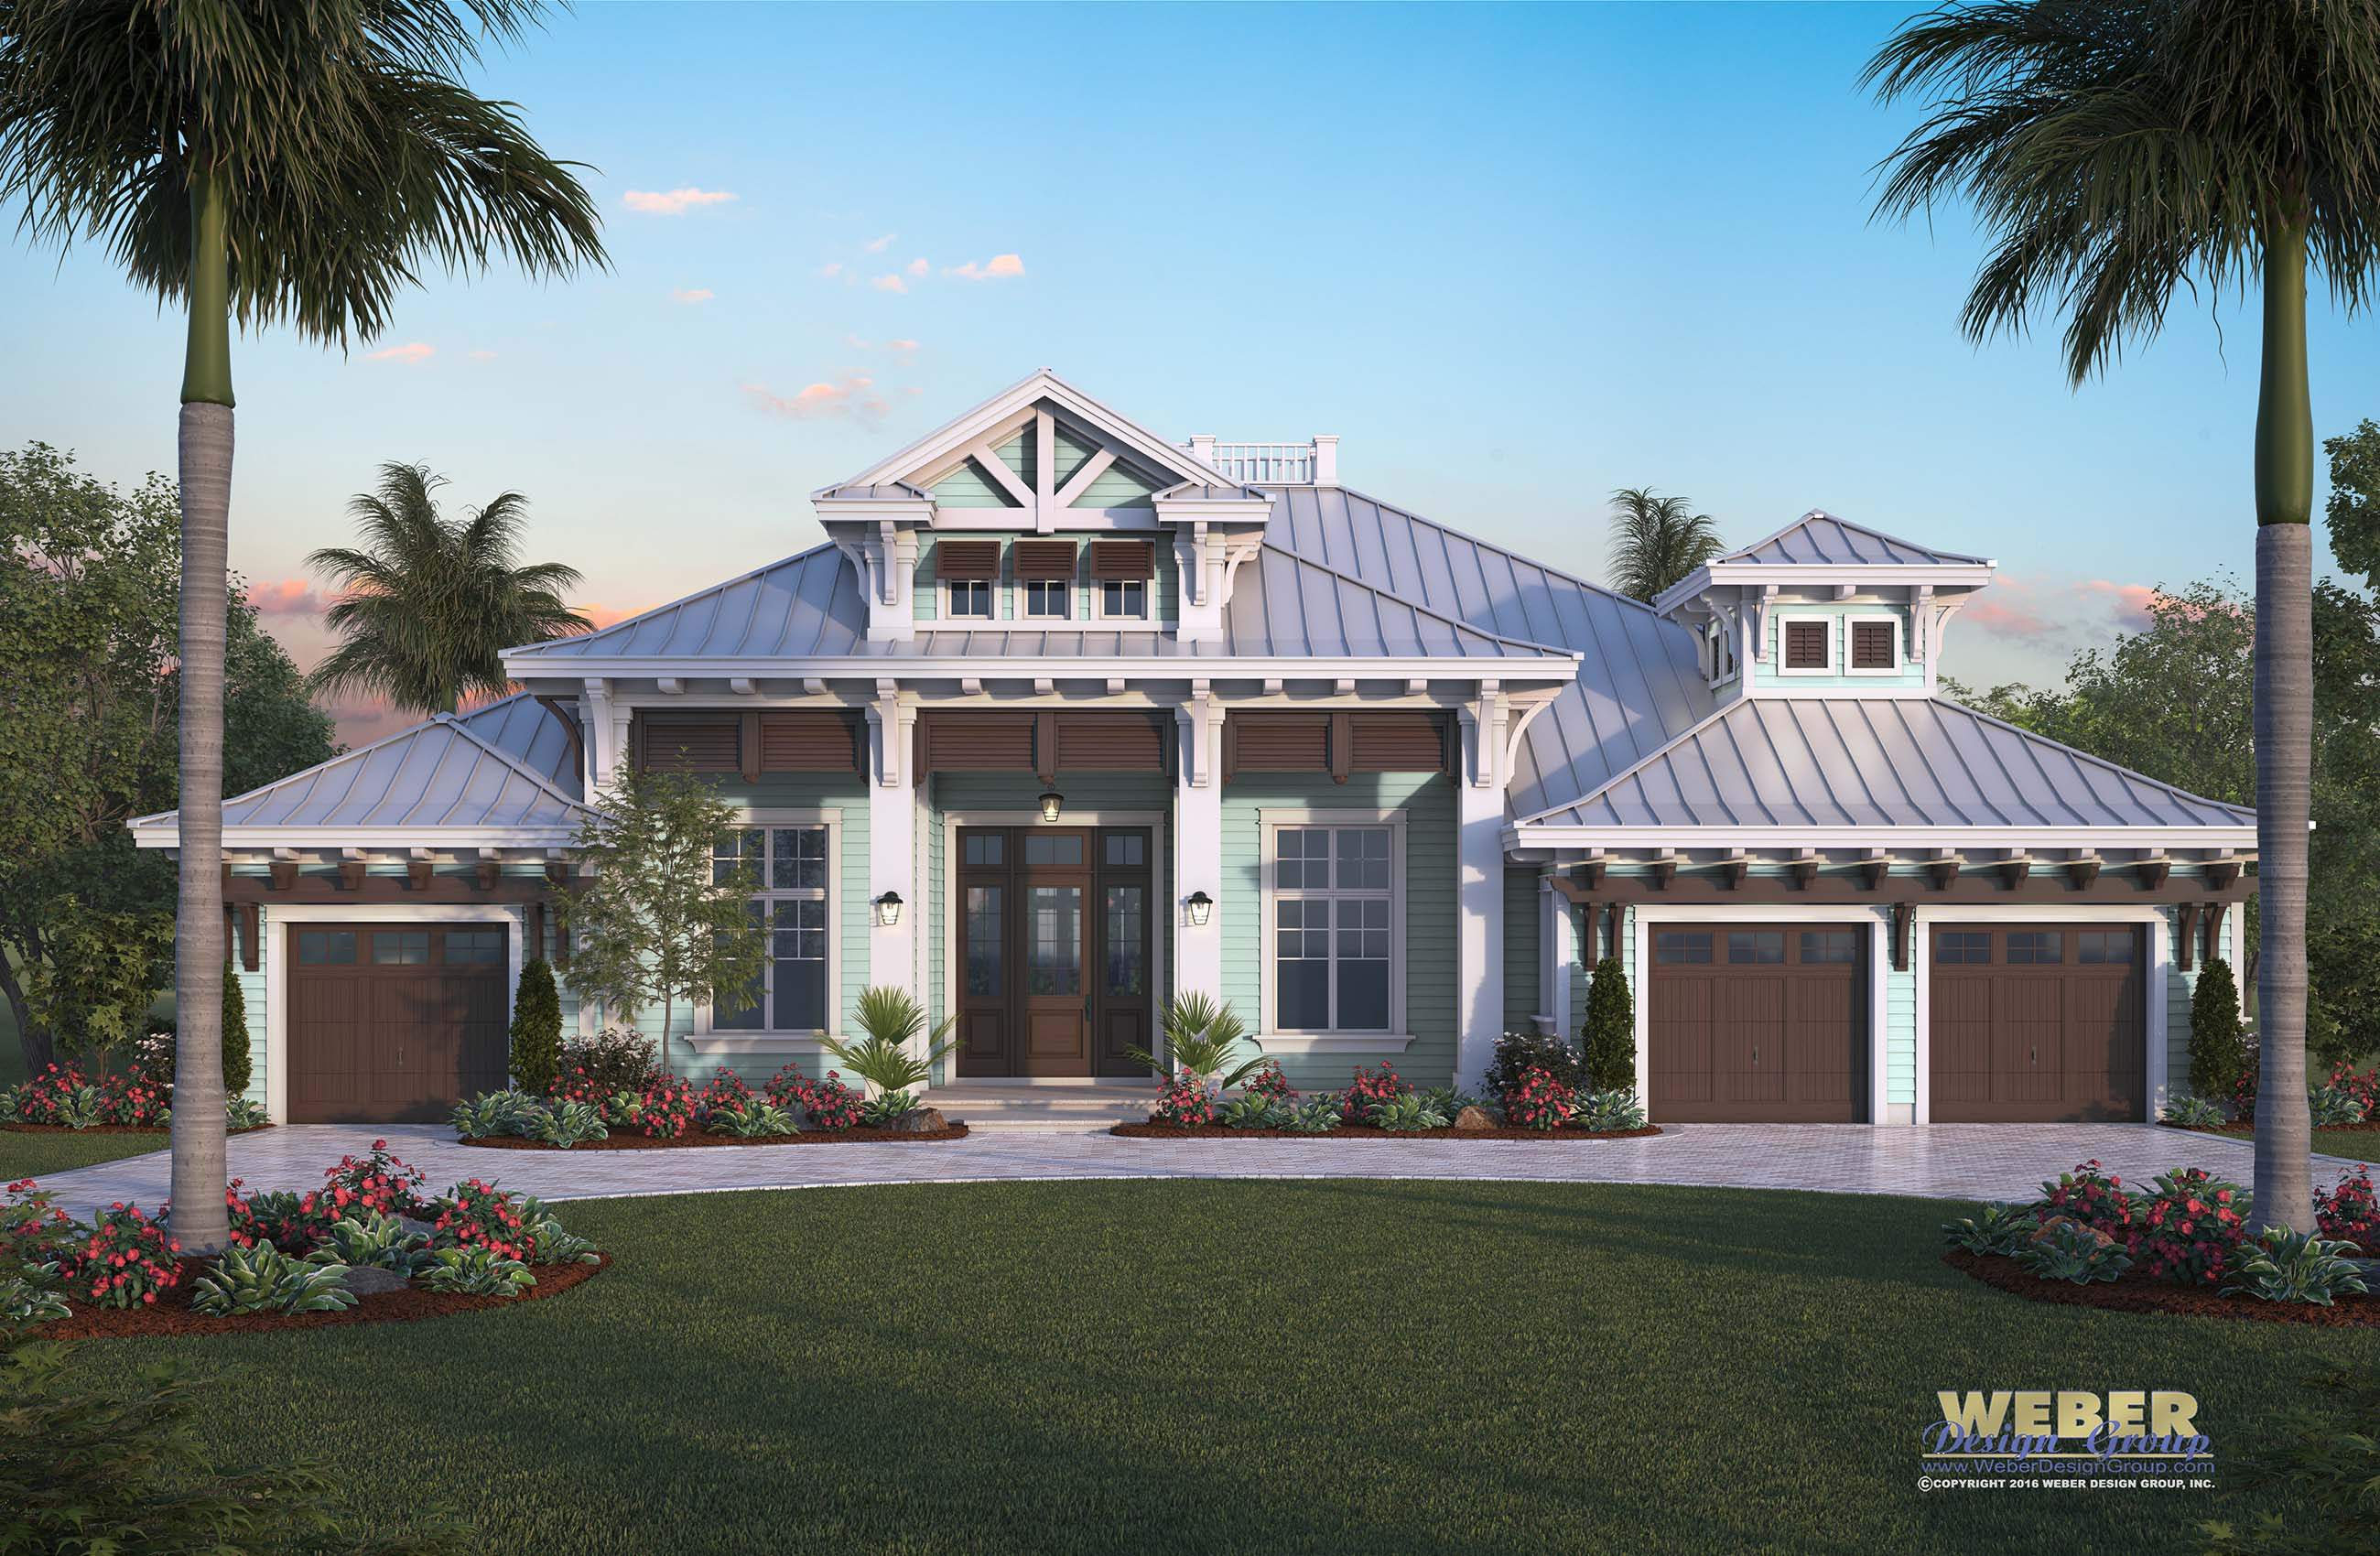 Harbor house plan luxury caribbean beach home outdoor for West indies house plans